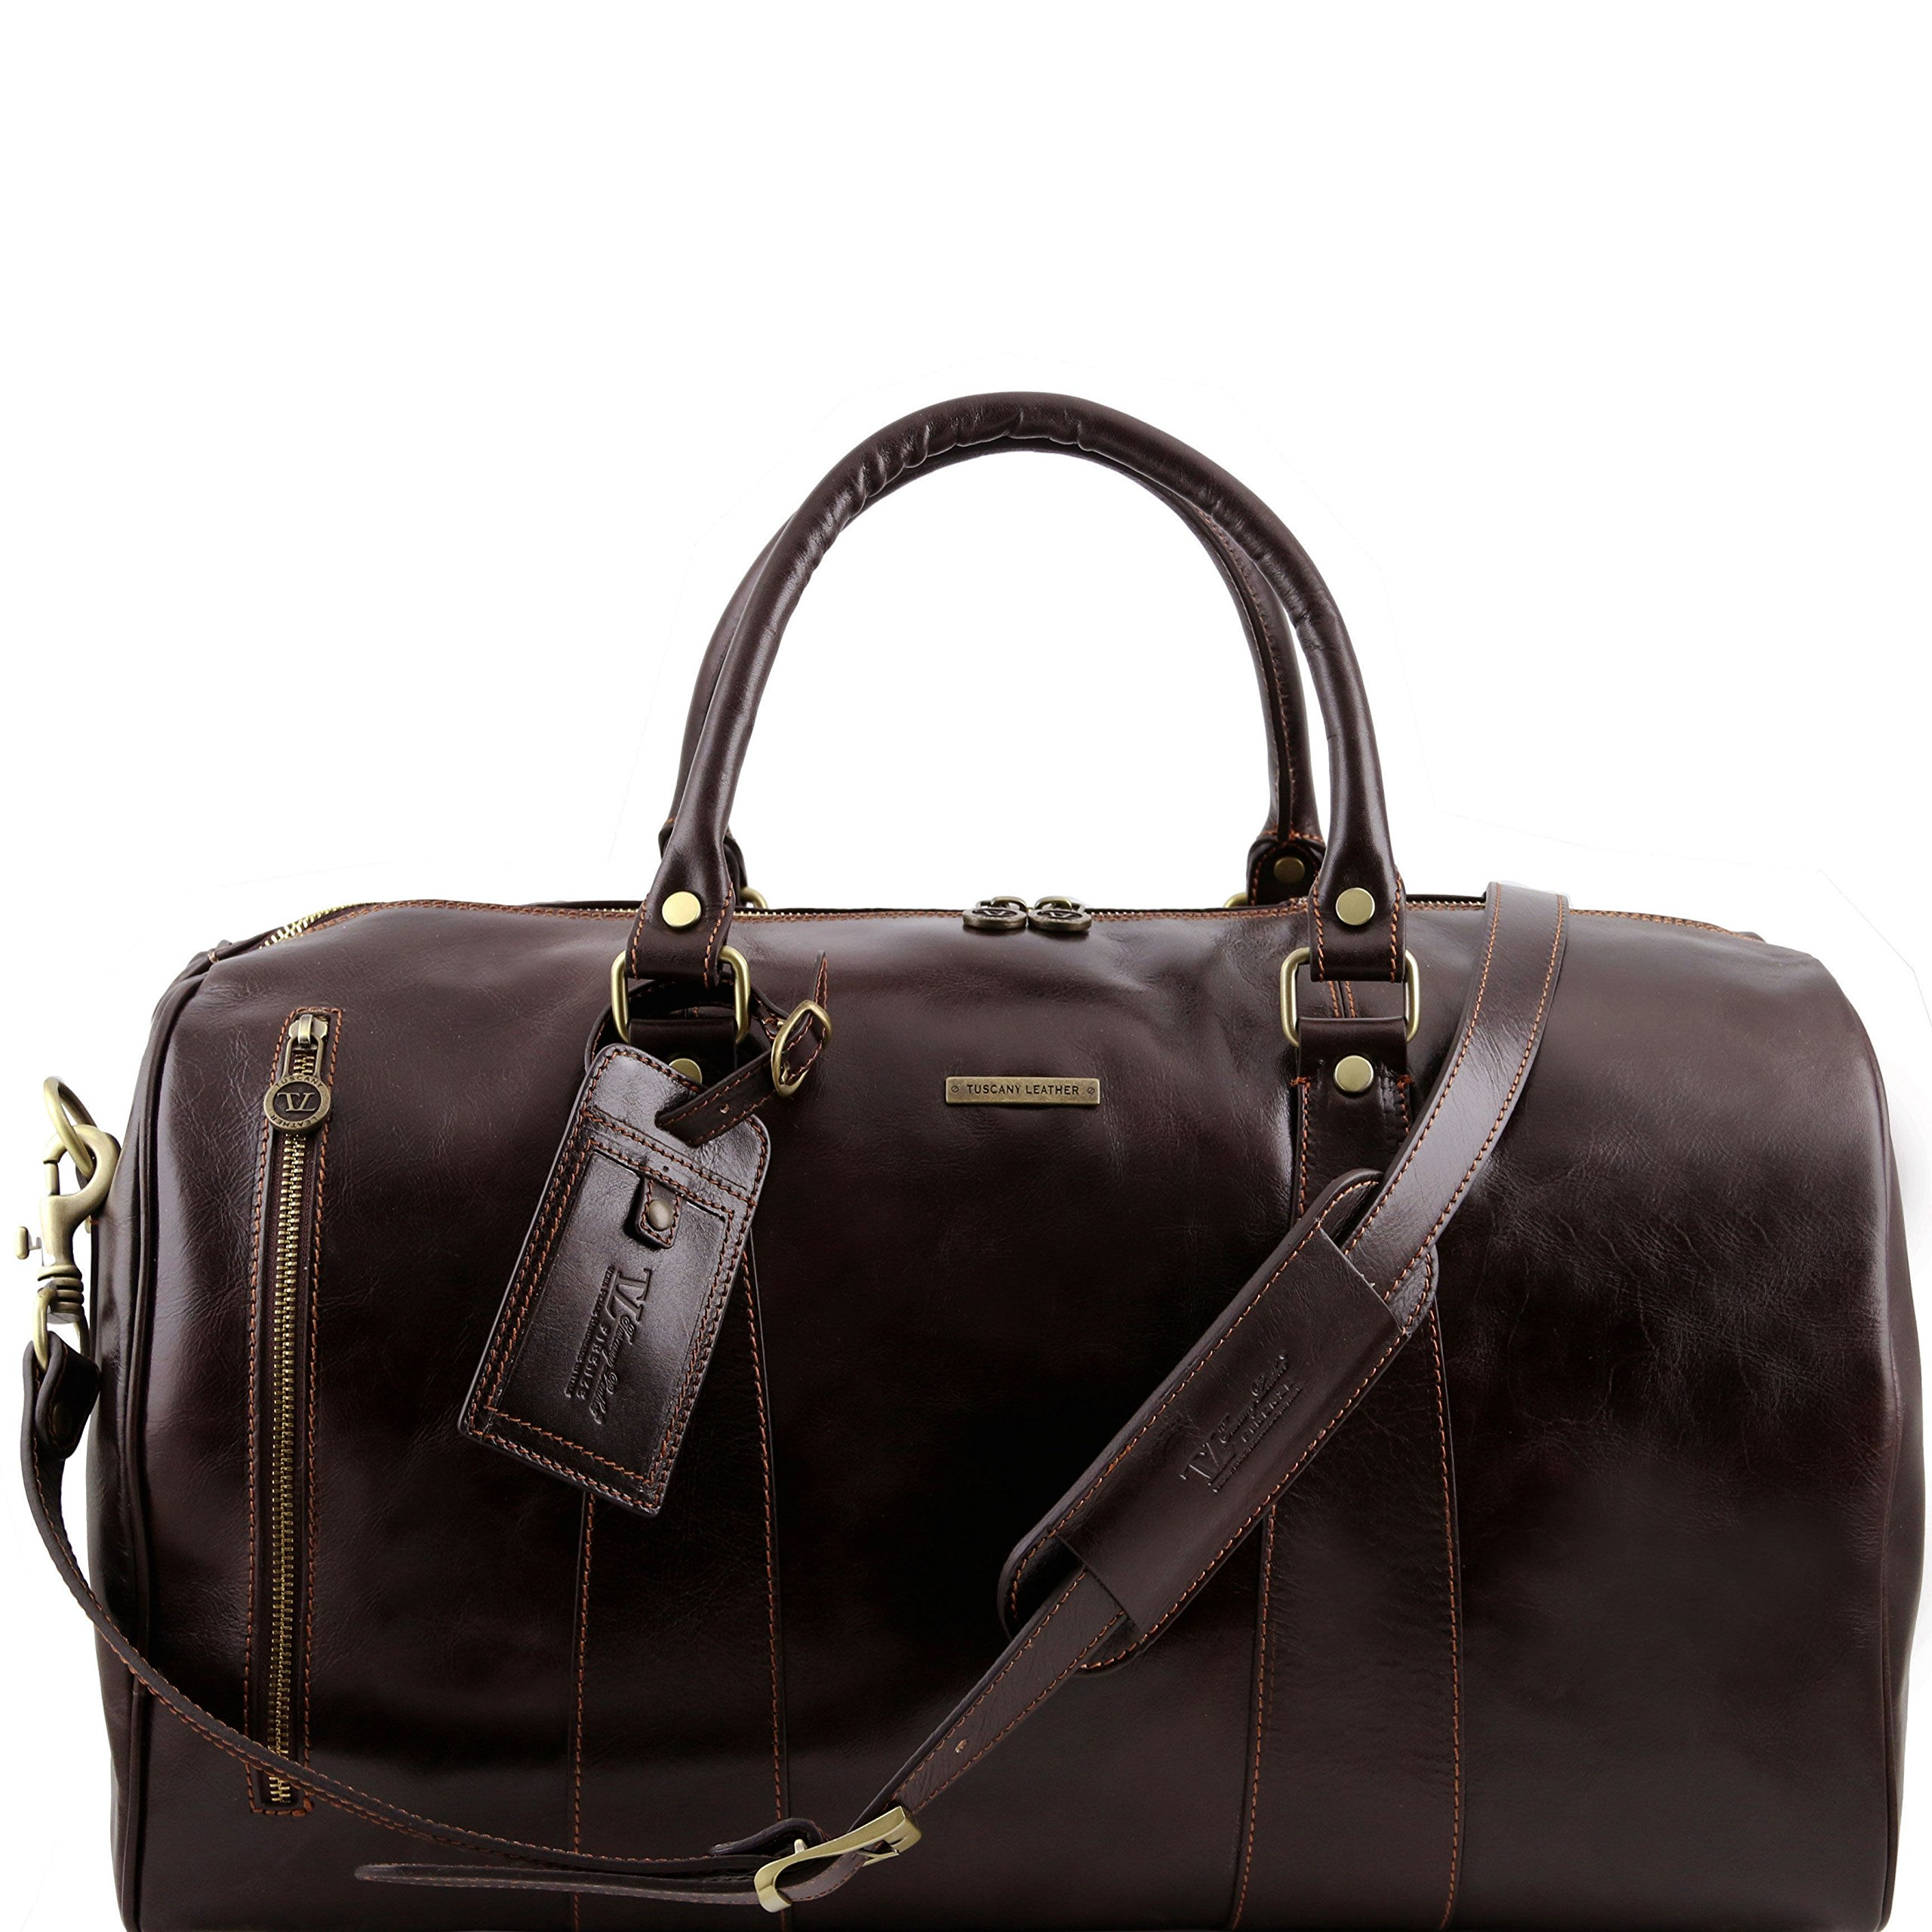 Tuscany Leather TL Voyager Travel leather duffle bag - Large size Dark Brown